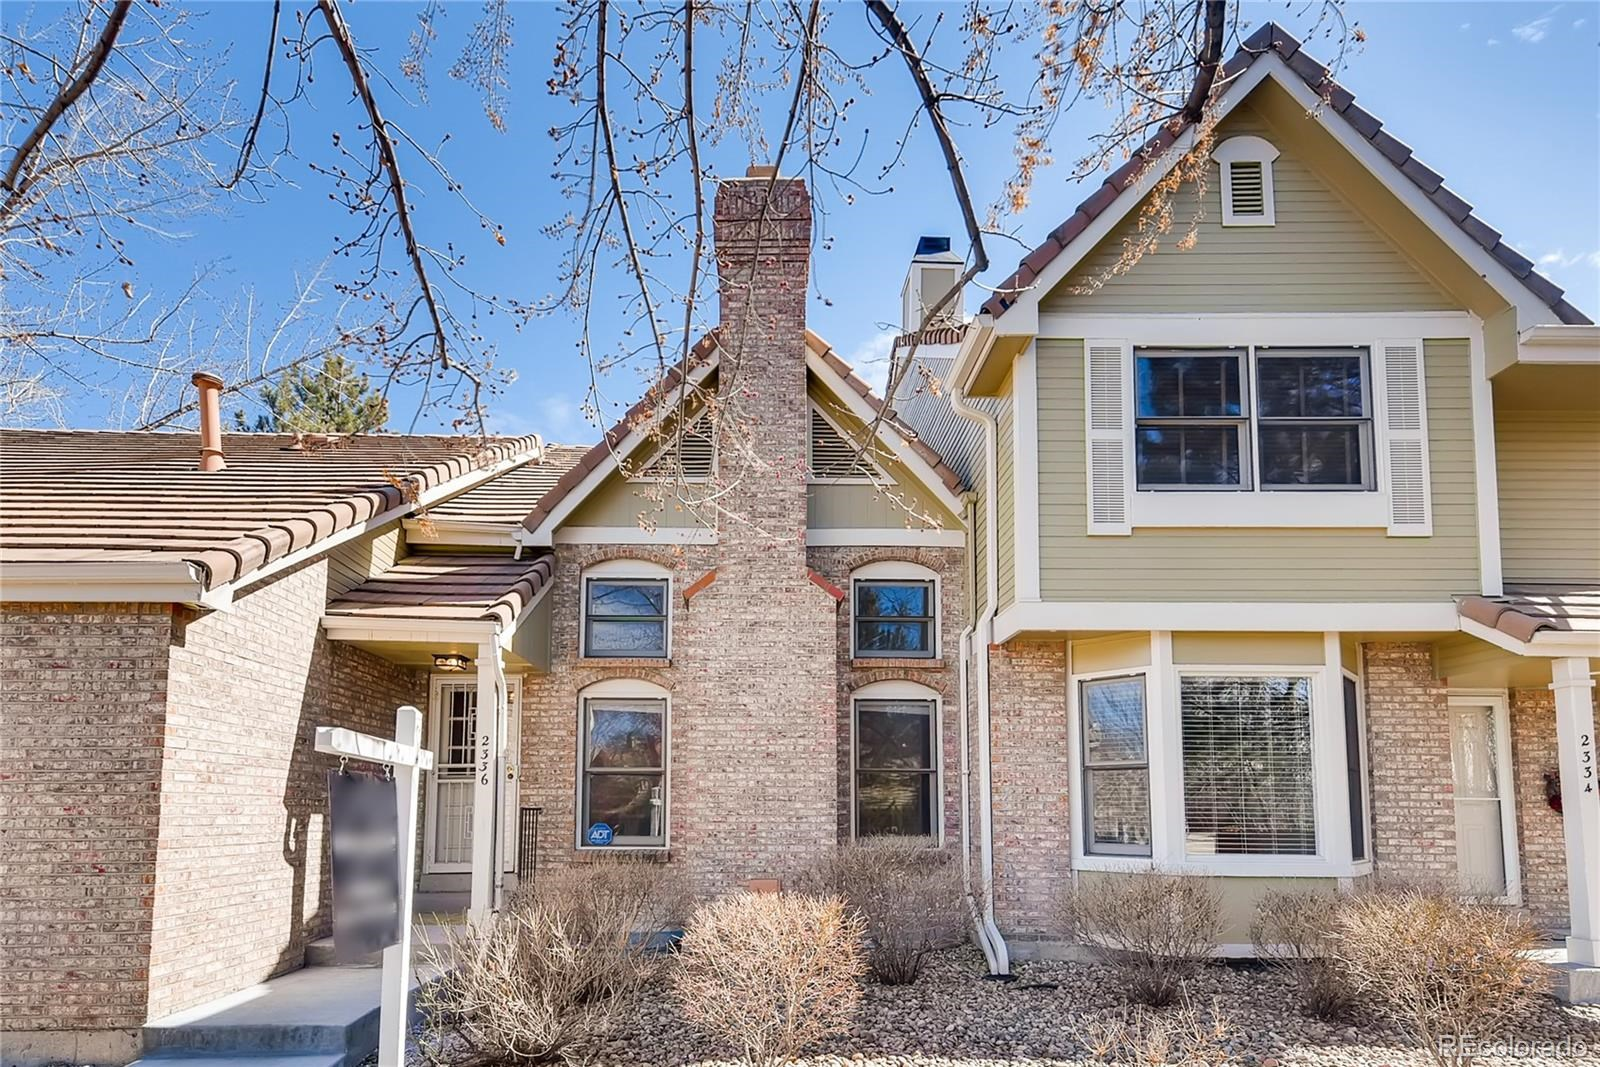 MLS# 6910180 - 1 - 2336 Ranch Drive, Westminster, CO 80234